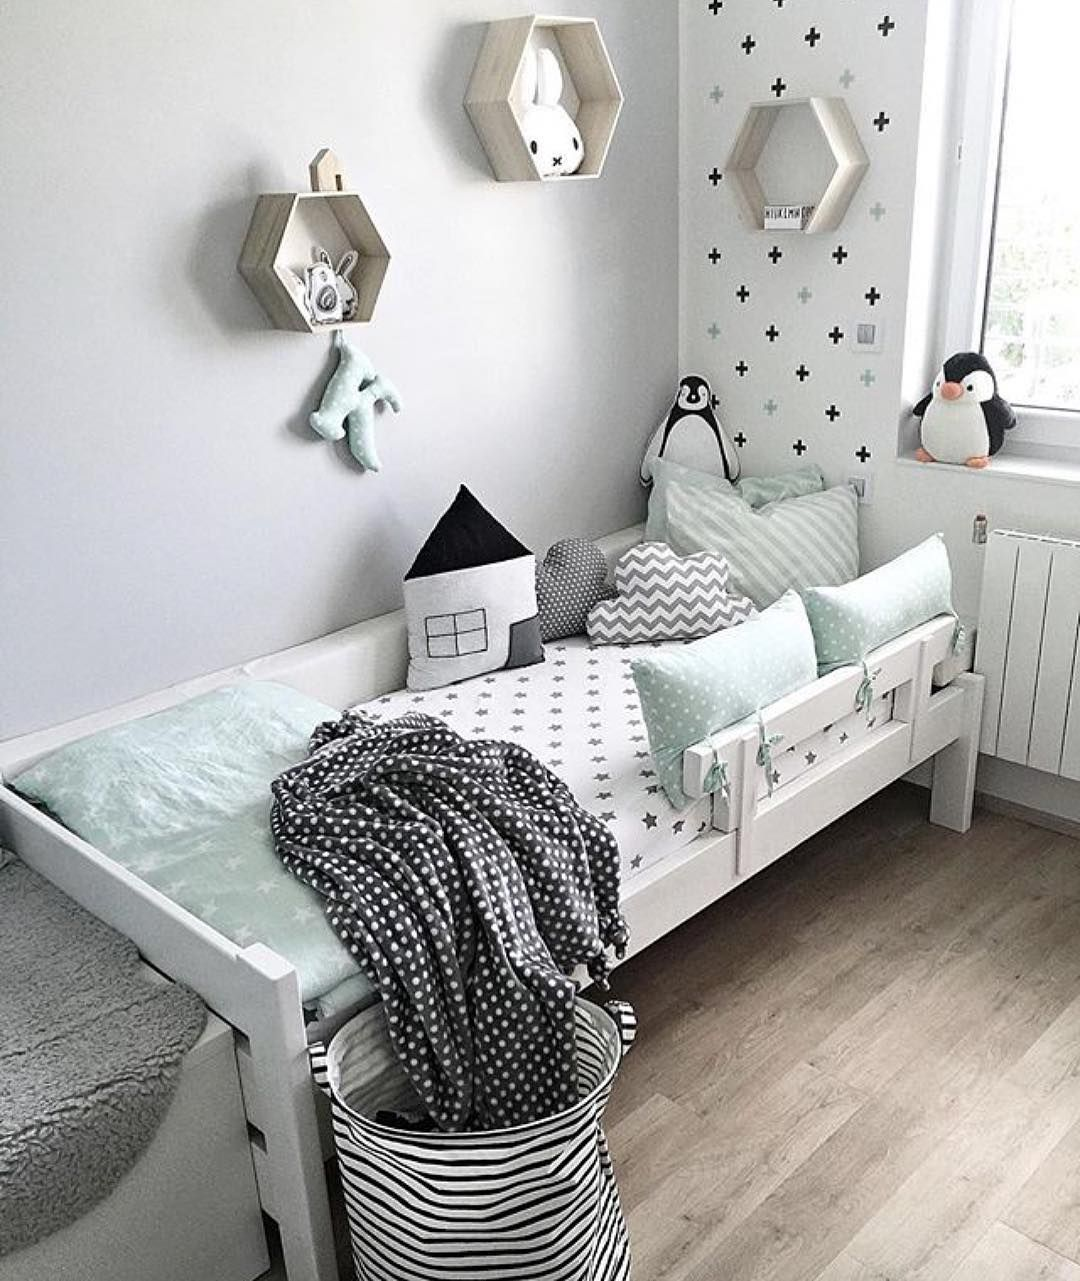 Unisex Kids Room Ideas: Love This Cute Kids Room Design! #unisex #kidsroom